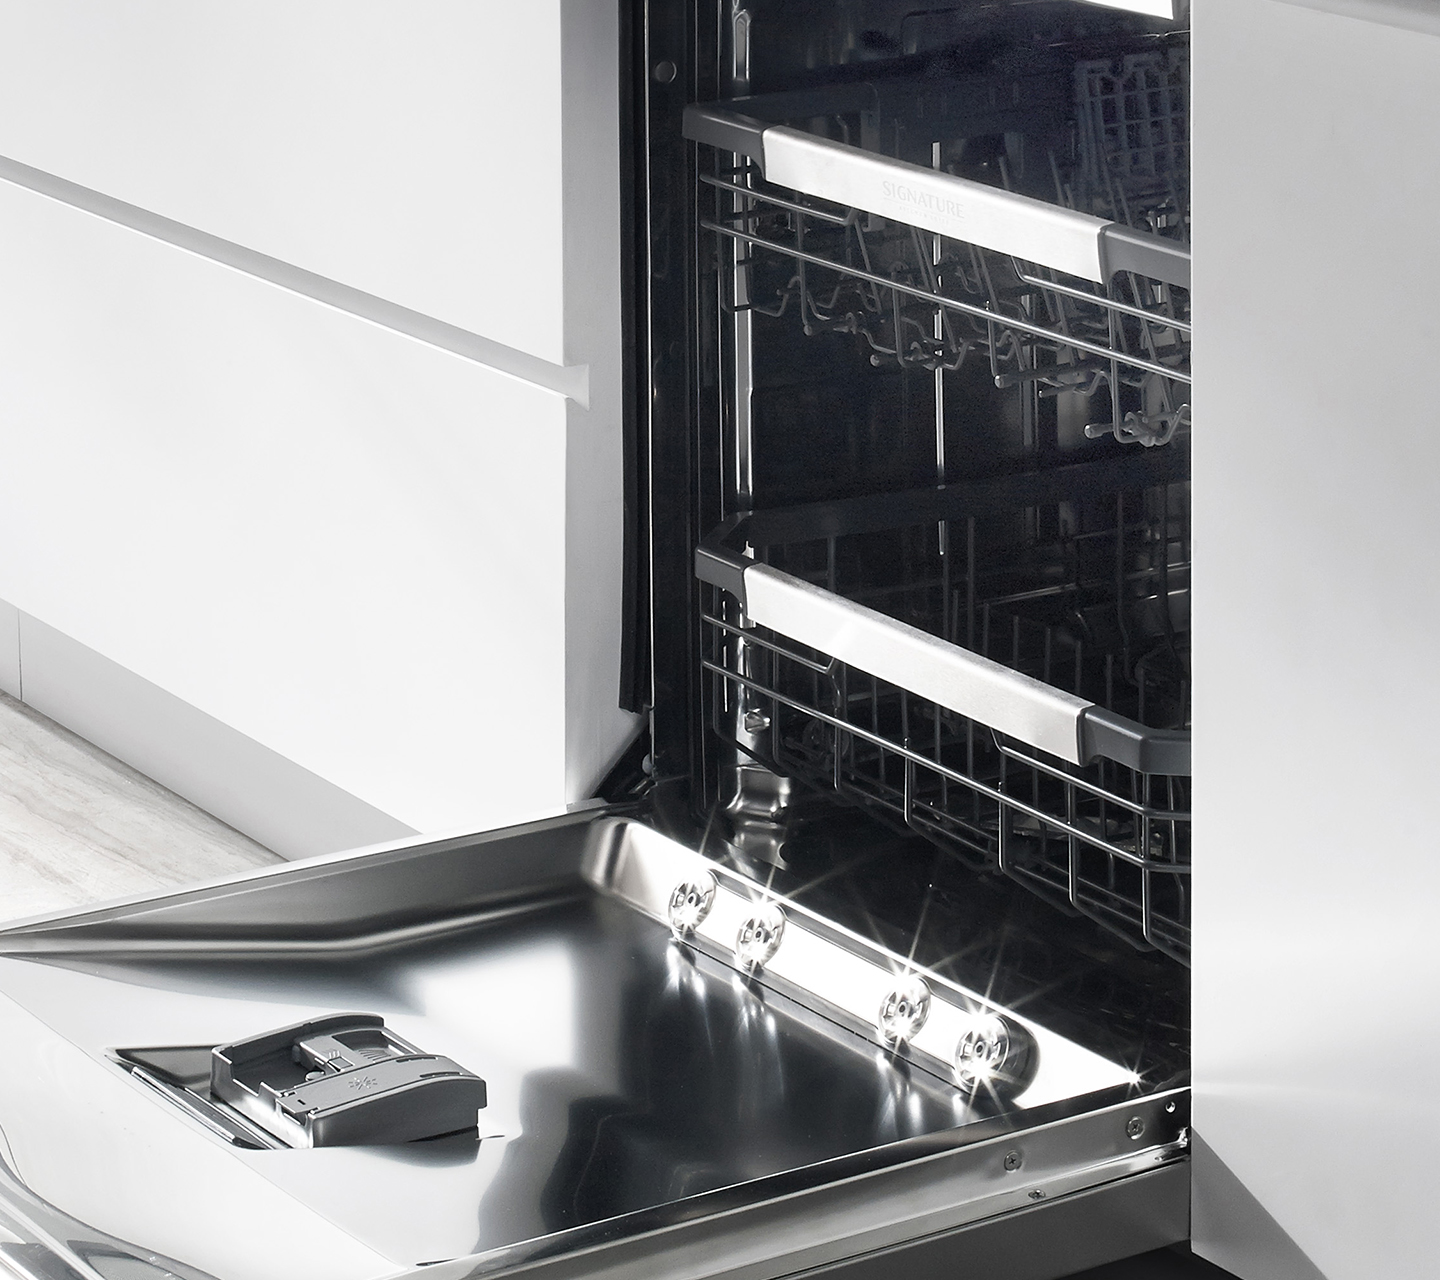 SmartRack in Dishwasher from Signature Kitchen Suite